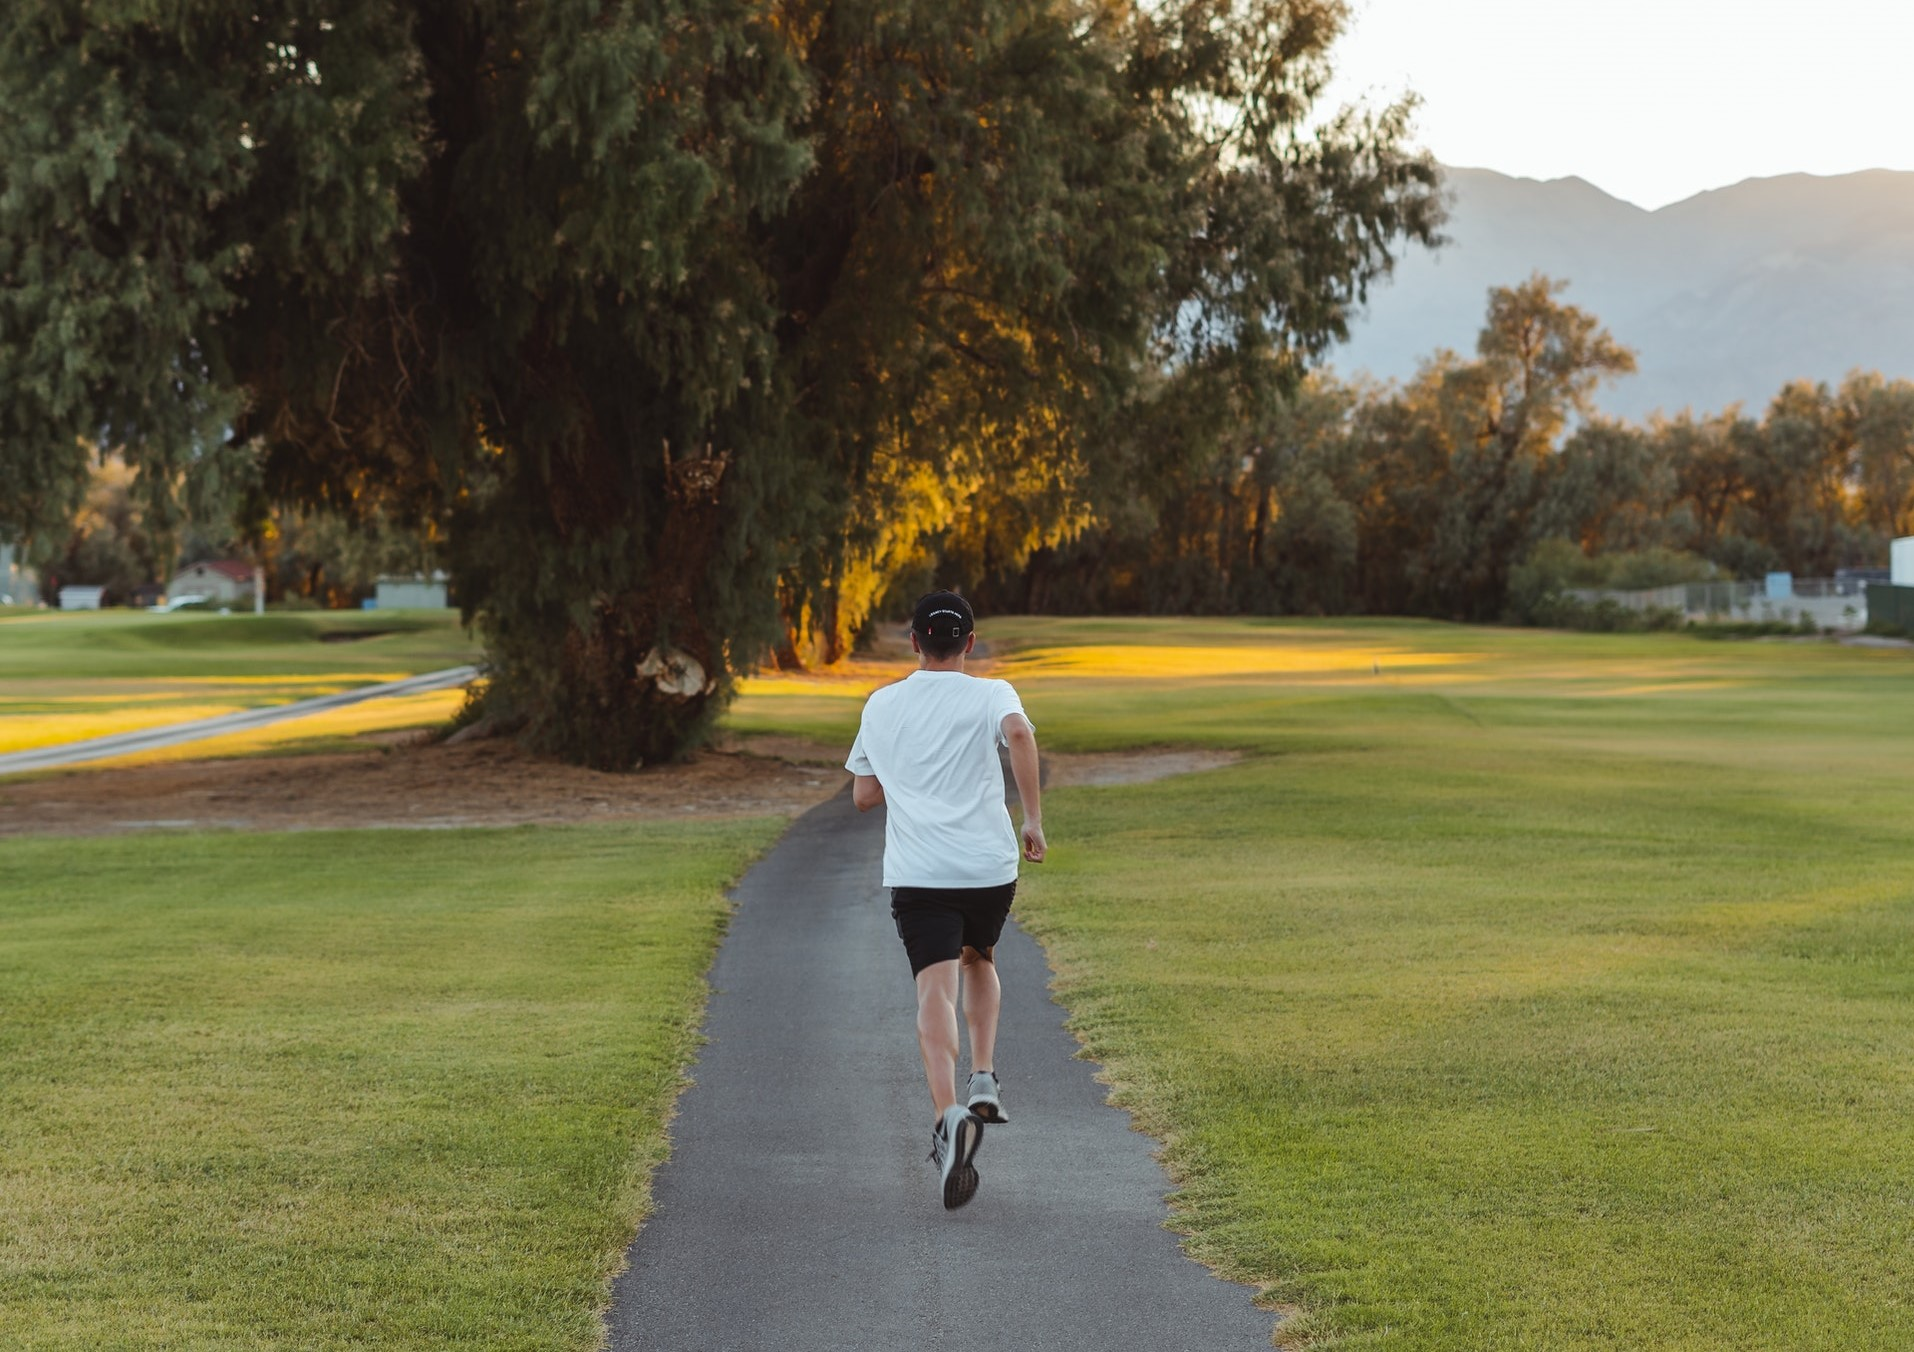 A man jogging in the morning